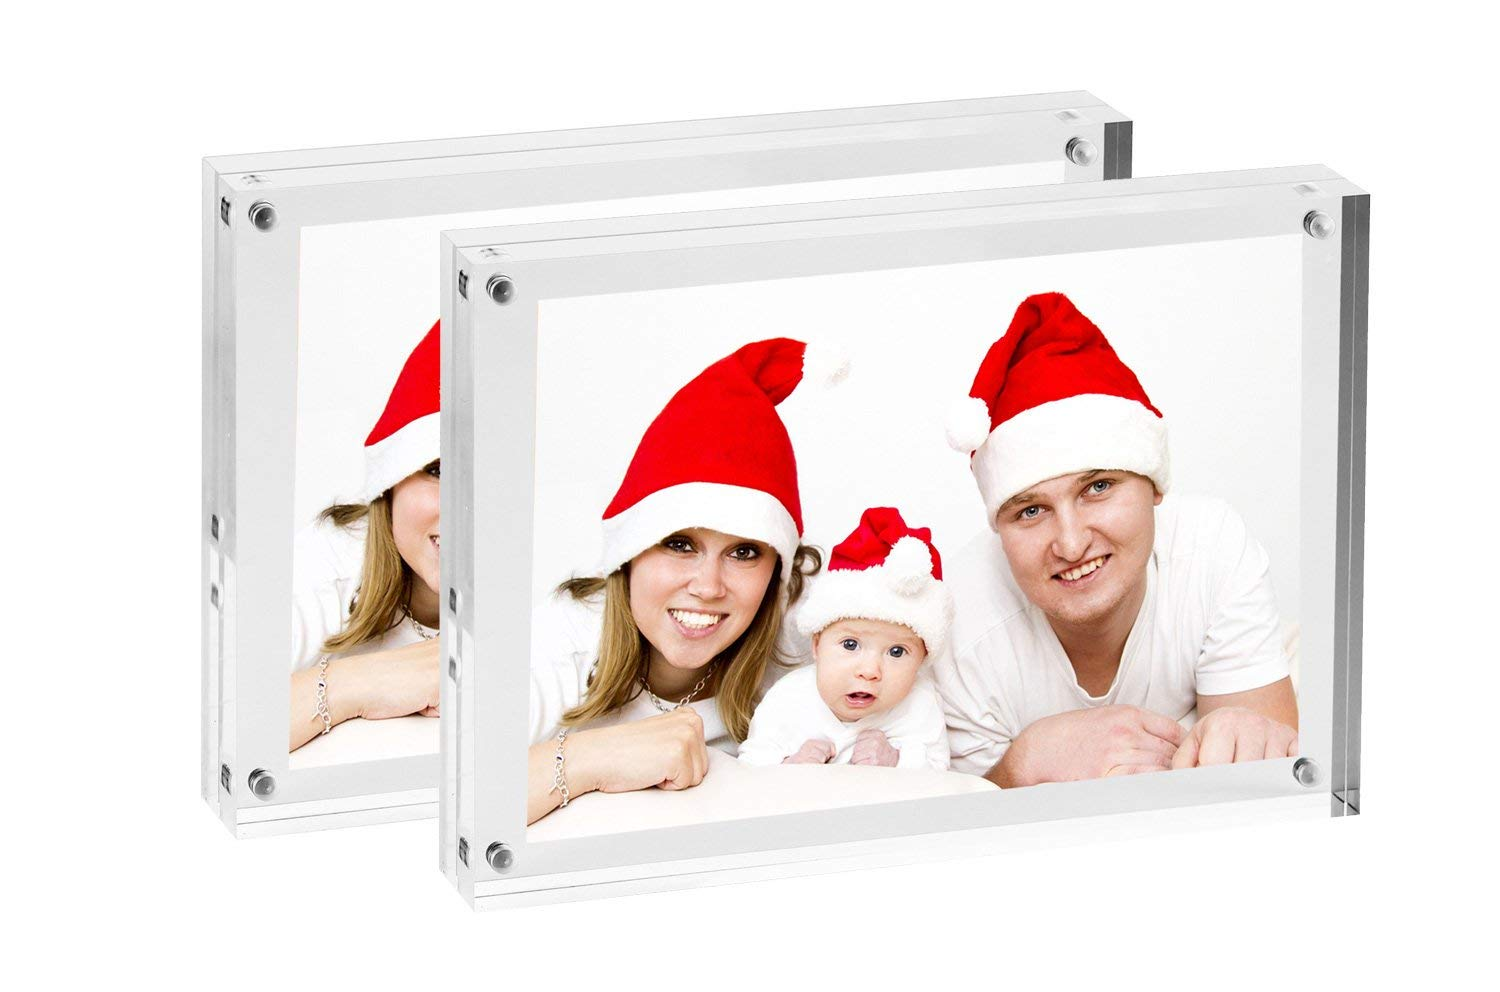 "Clear Double Sided Acrylic Magnetic Photo Frames | Free Standing Picture Frames For Elegant Desktop Display With Clear Borders - Set of 2 Frames - frame size 5"" x 7"" to hold photo 4"" x 6"" (2, 5"" x 7"")"